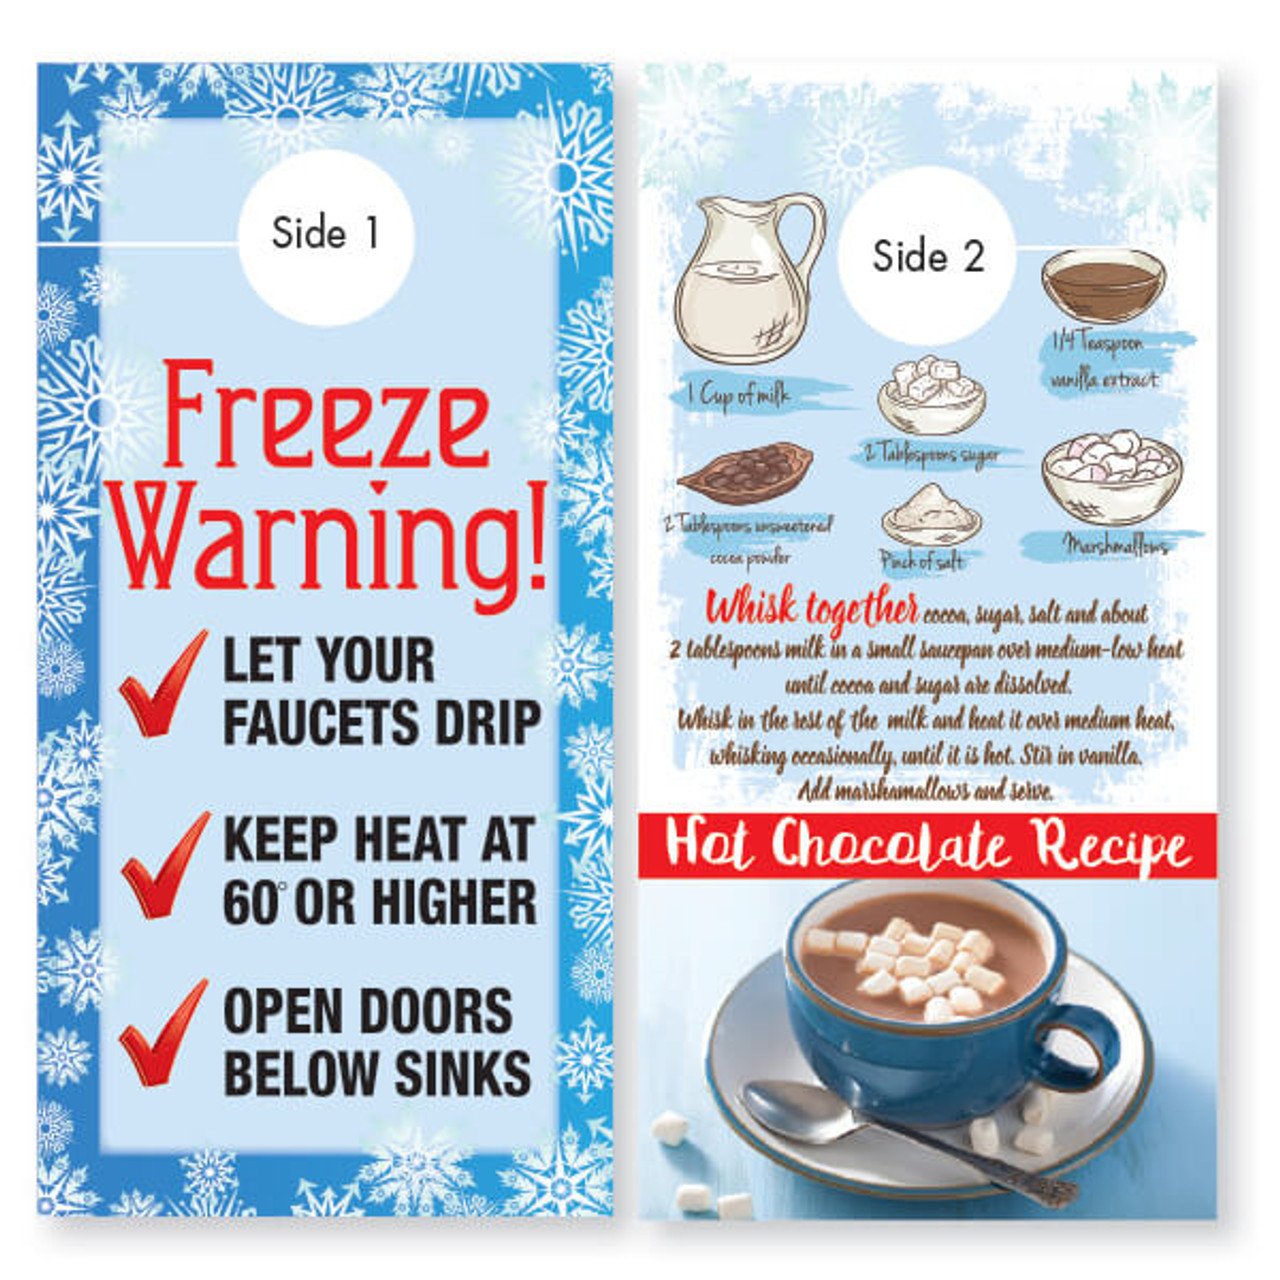 Freeze Warning Door Hanger with Hot Chocolate Recipe